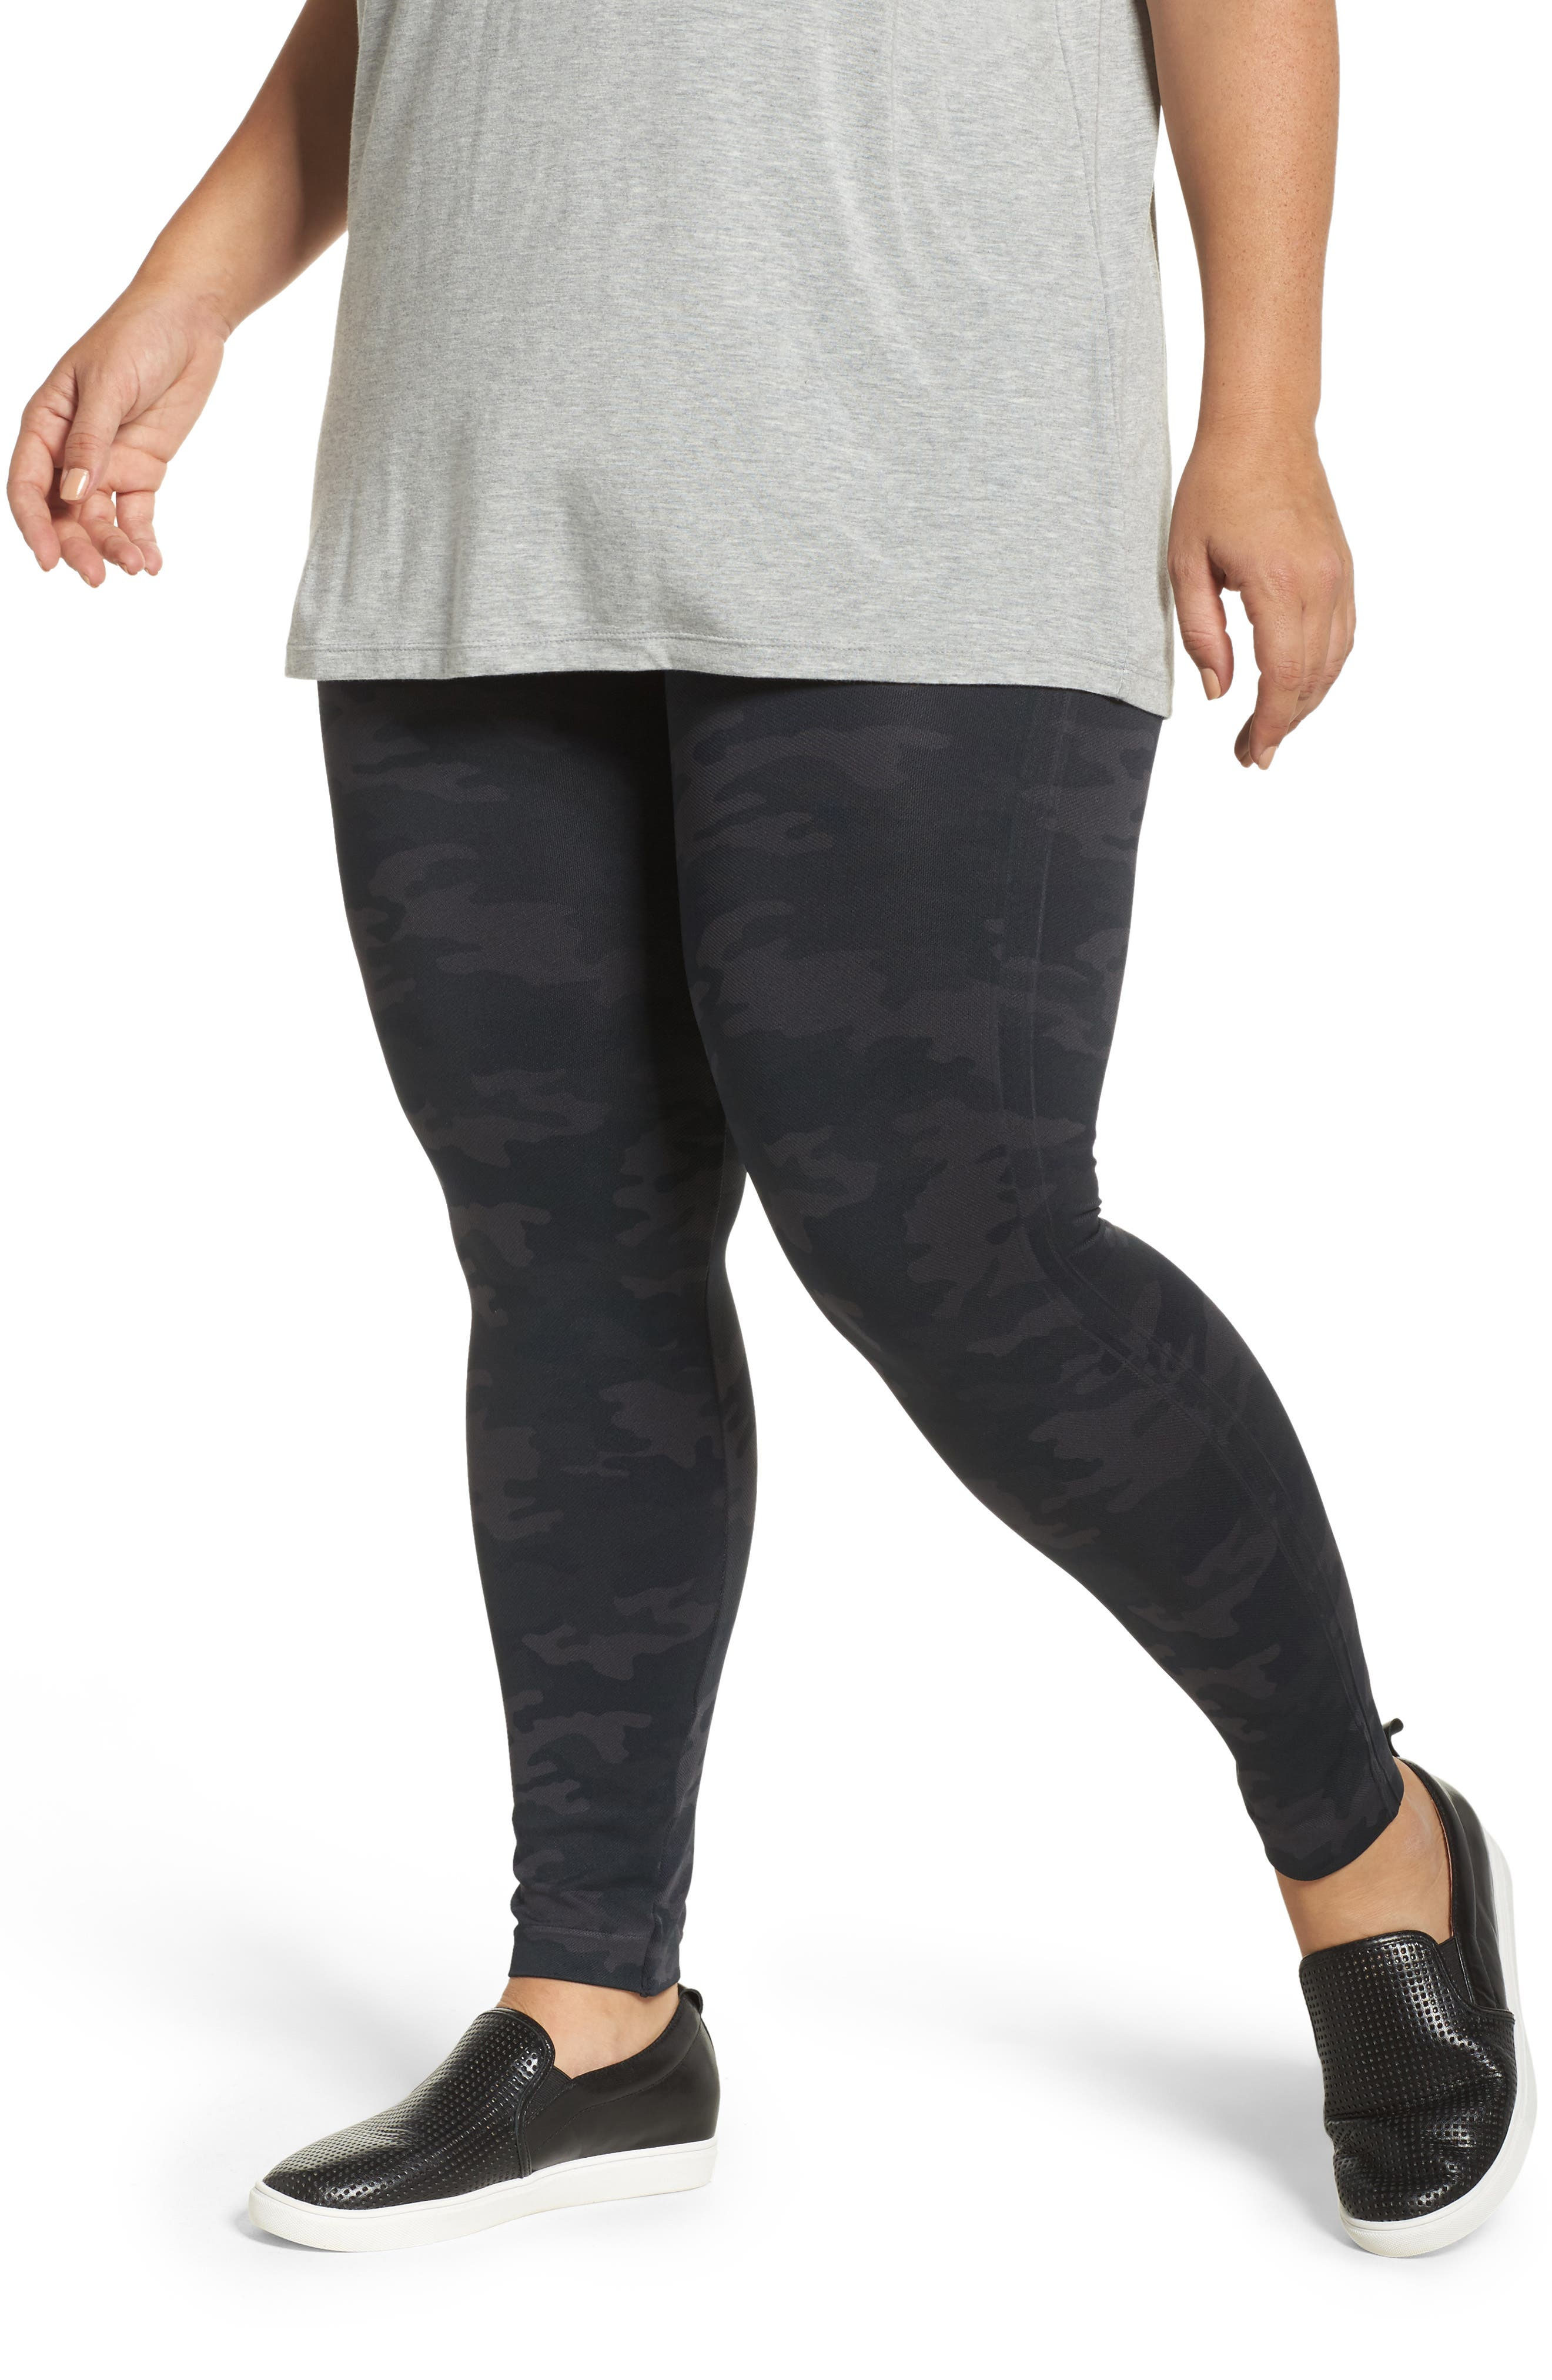 Look At Me Now Seamless Leggings,                             Main thumbnail 1, color,                             001